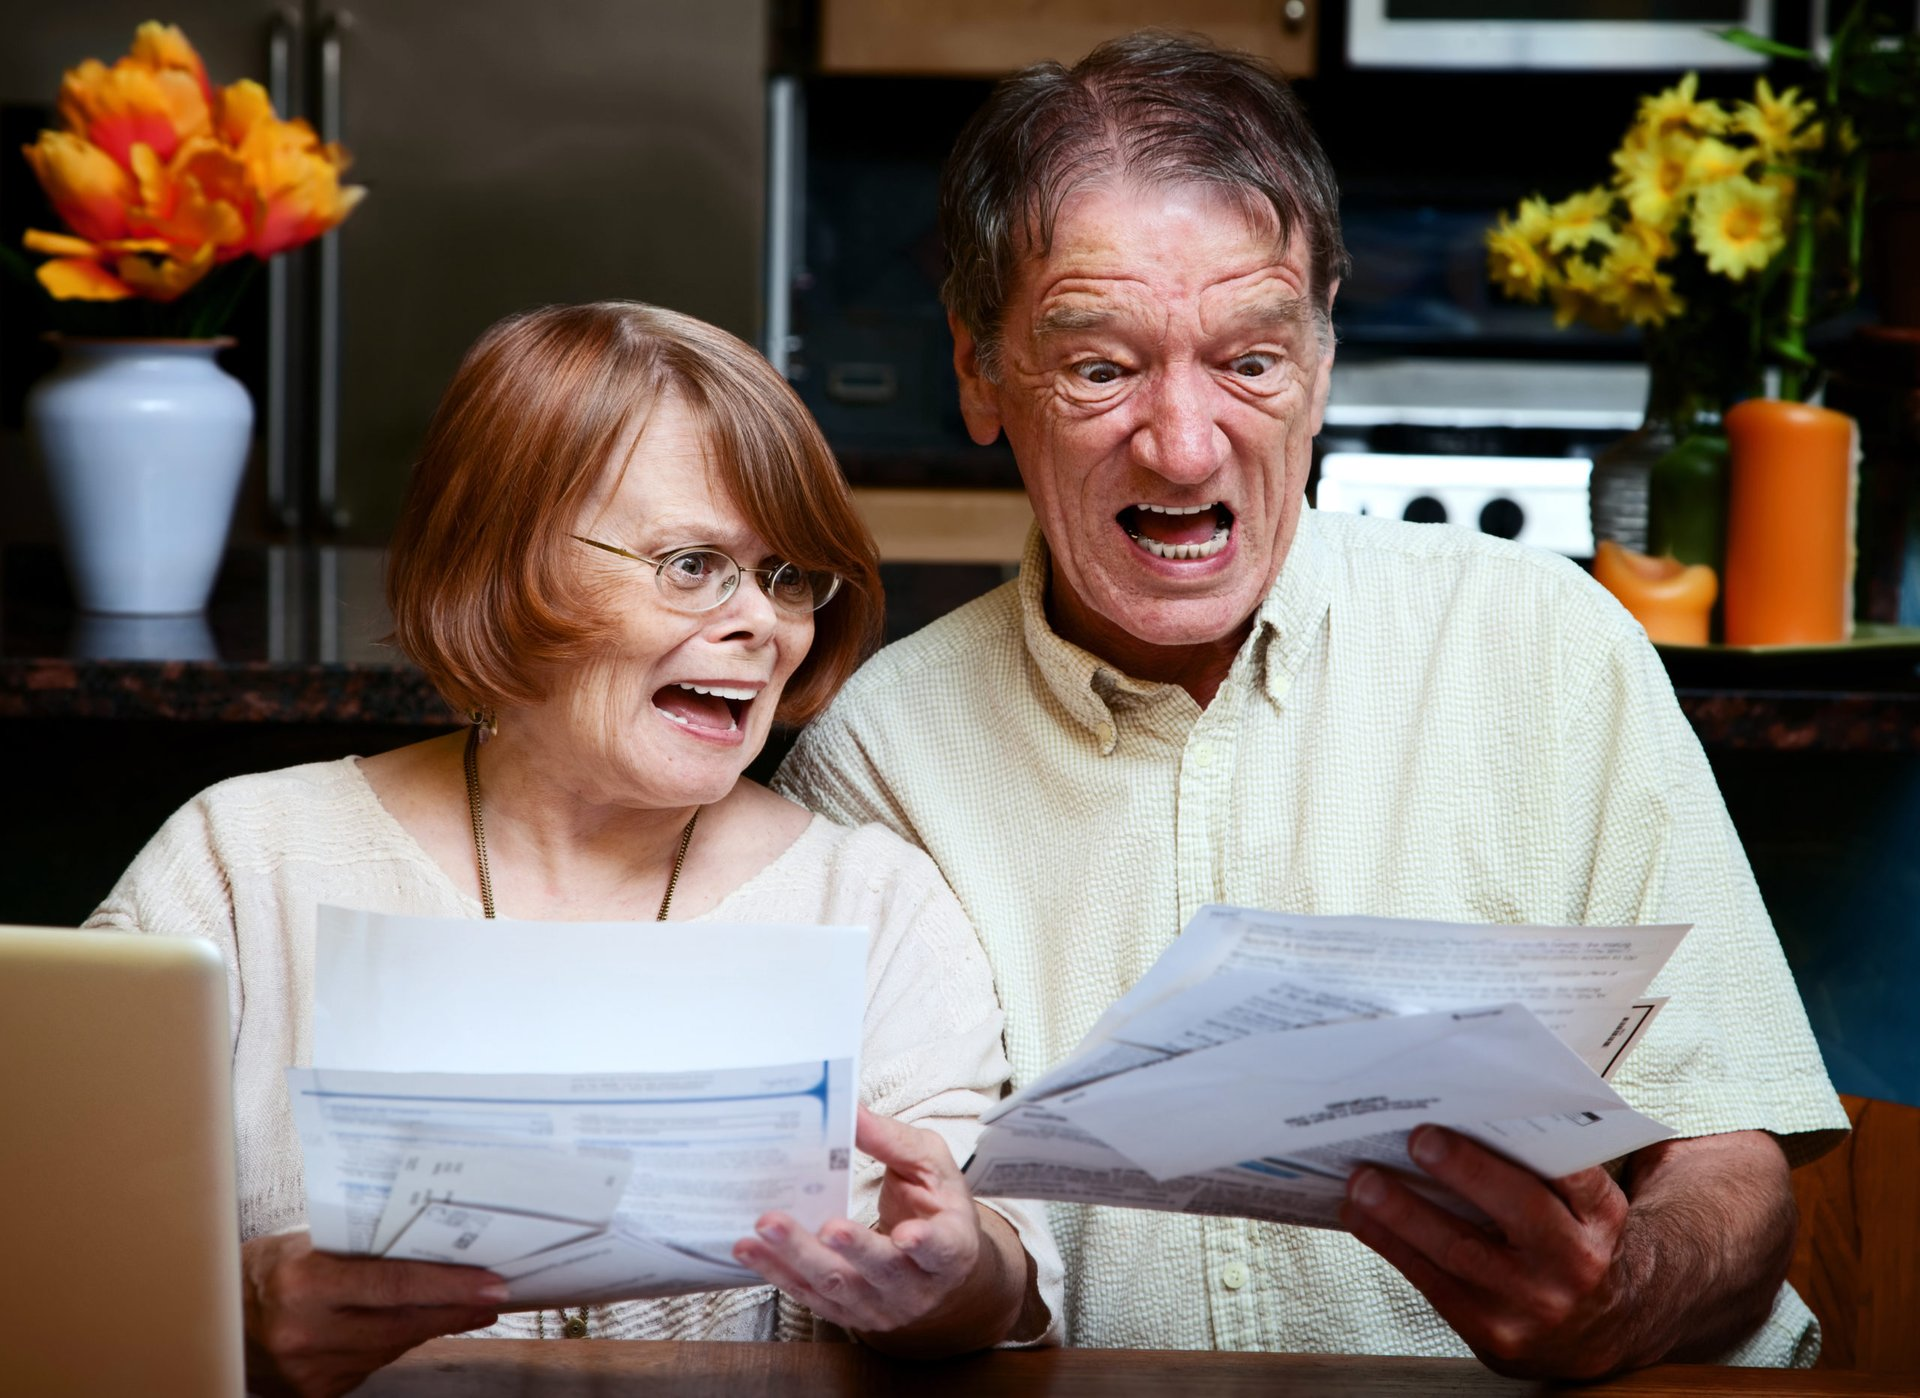 Couple shocked at higher cable bills